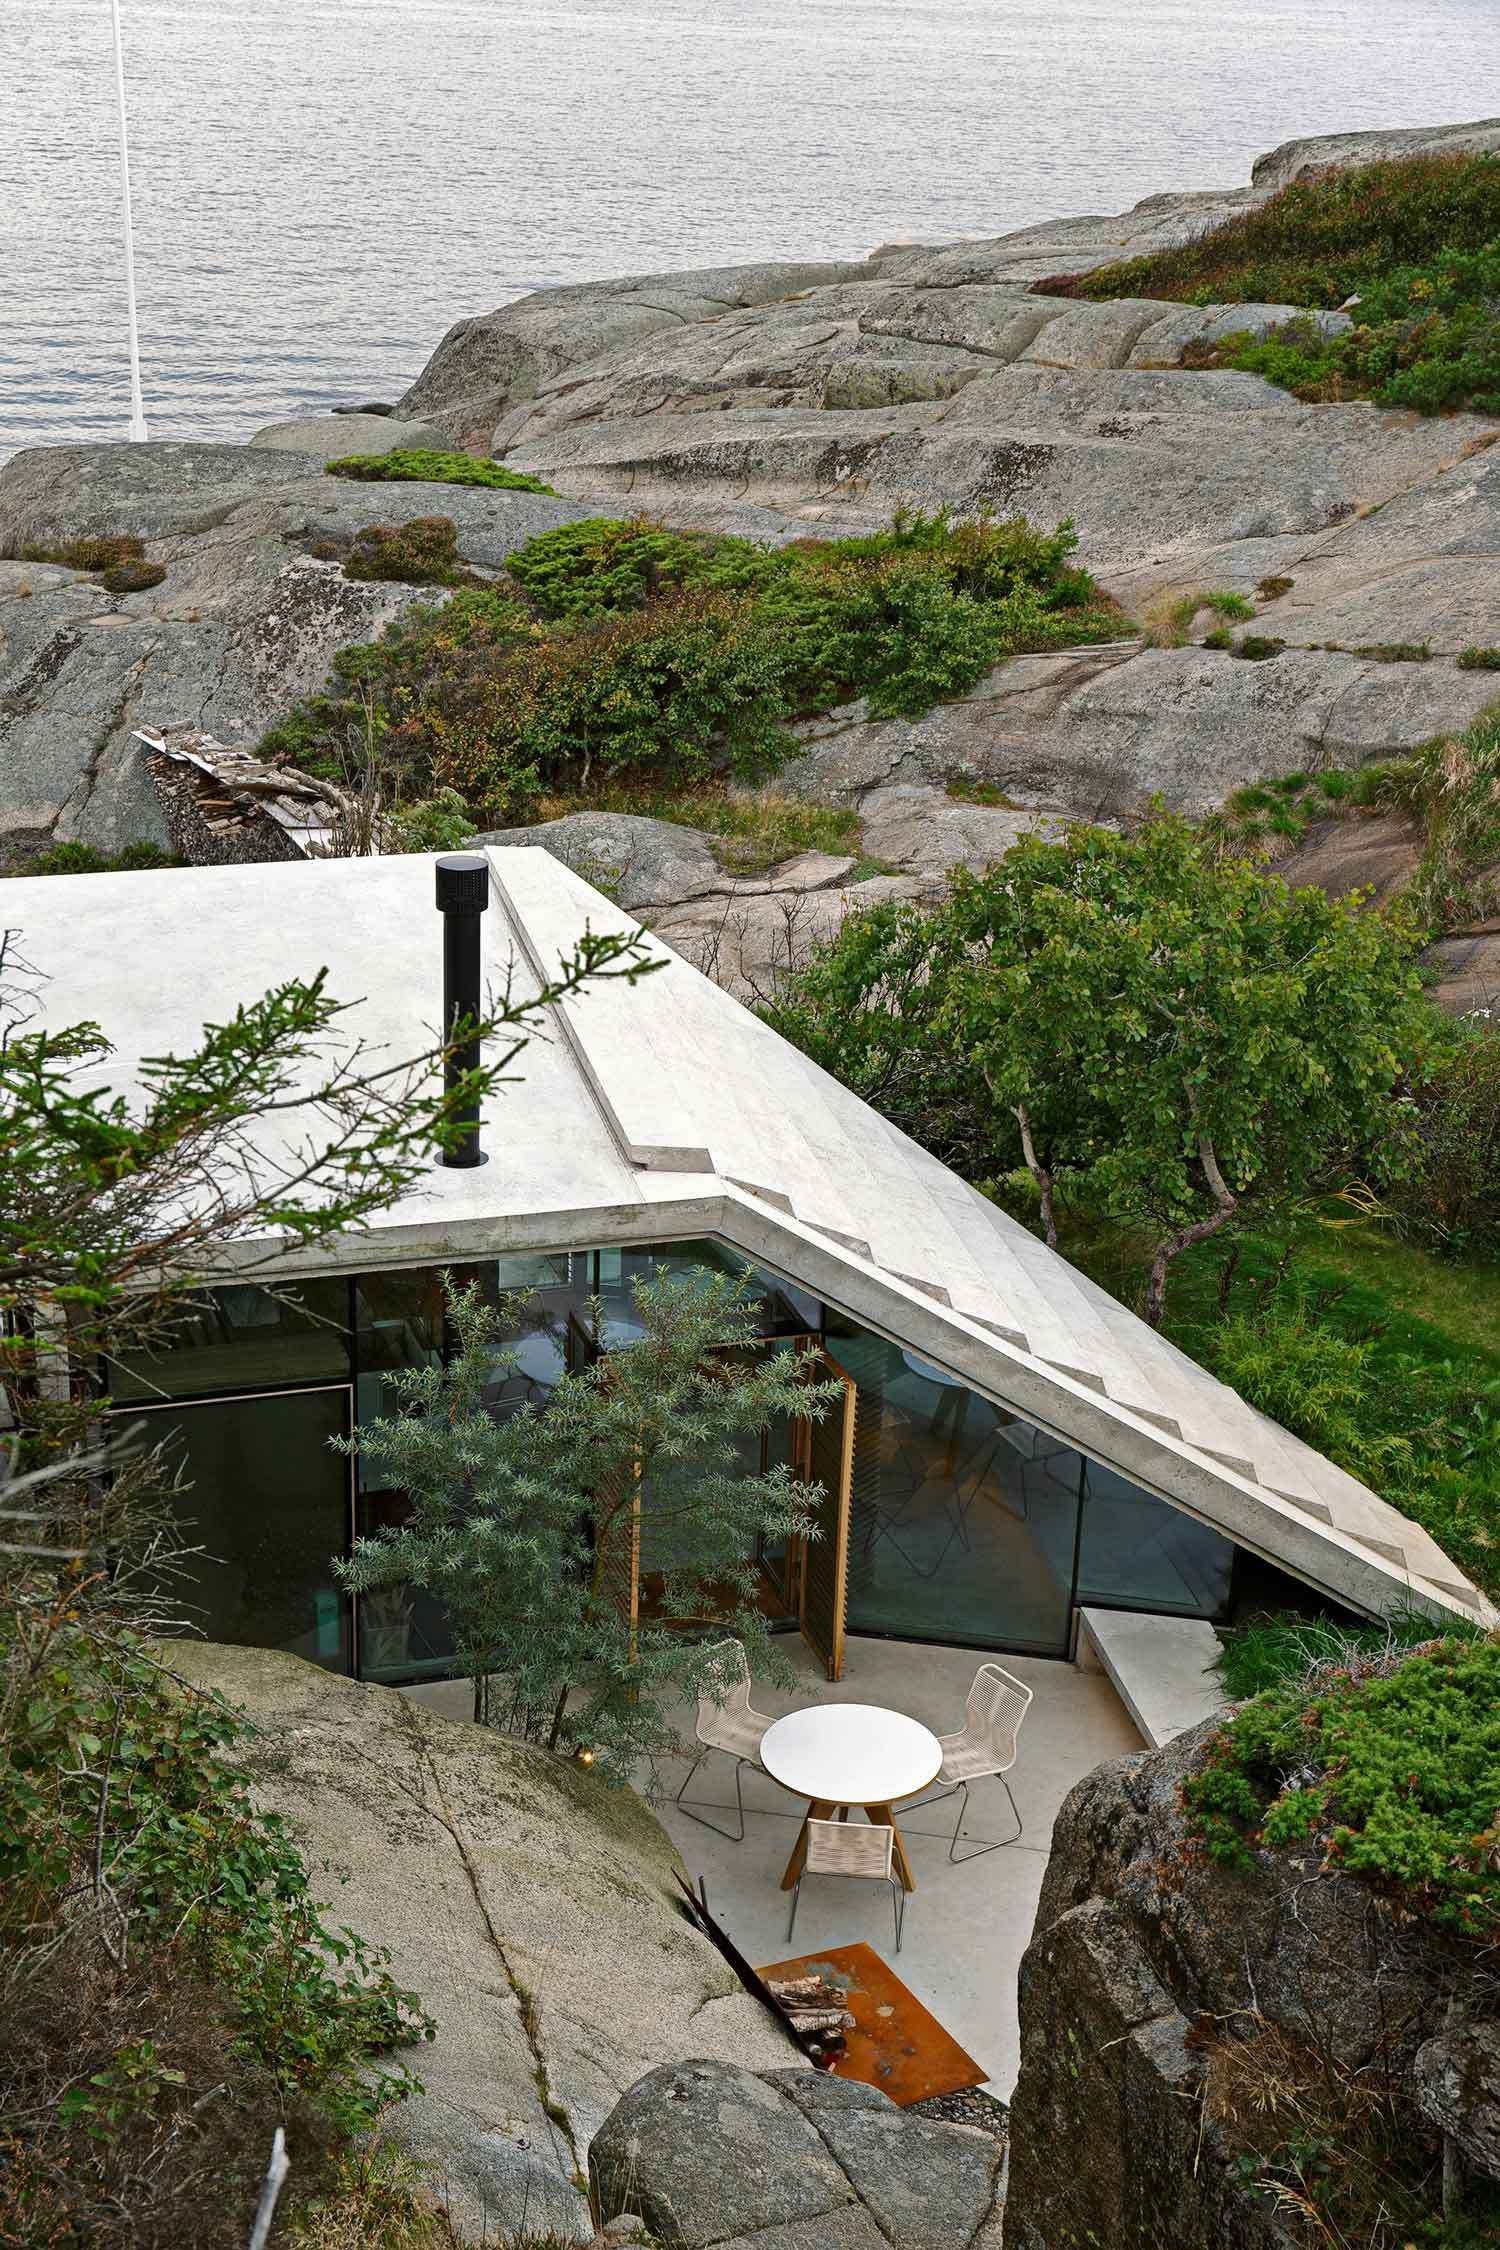 Knapphullet: Home on a Cliff in Norway by Lund Hagem   Yellowtrace